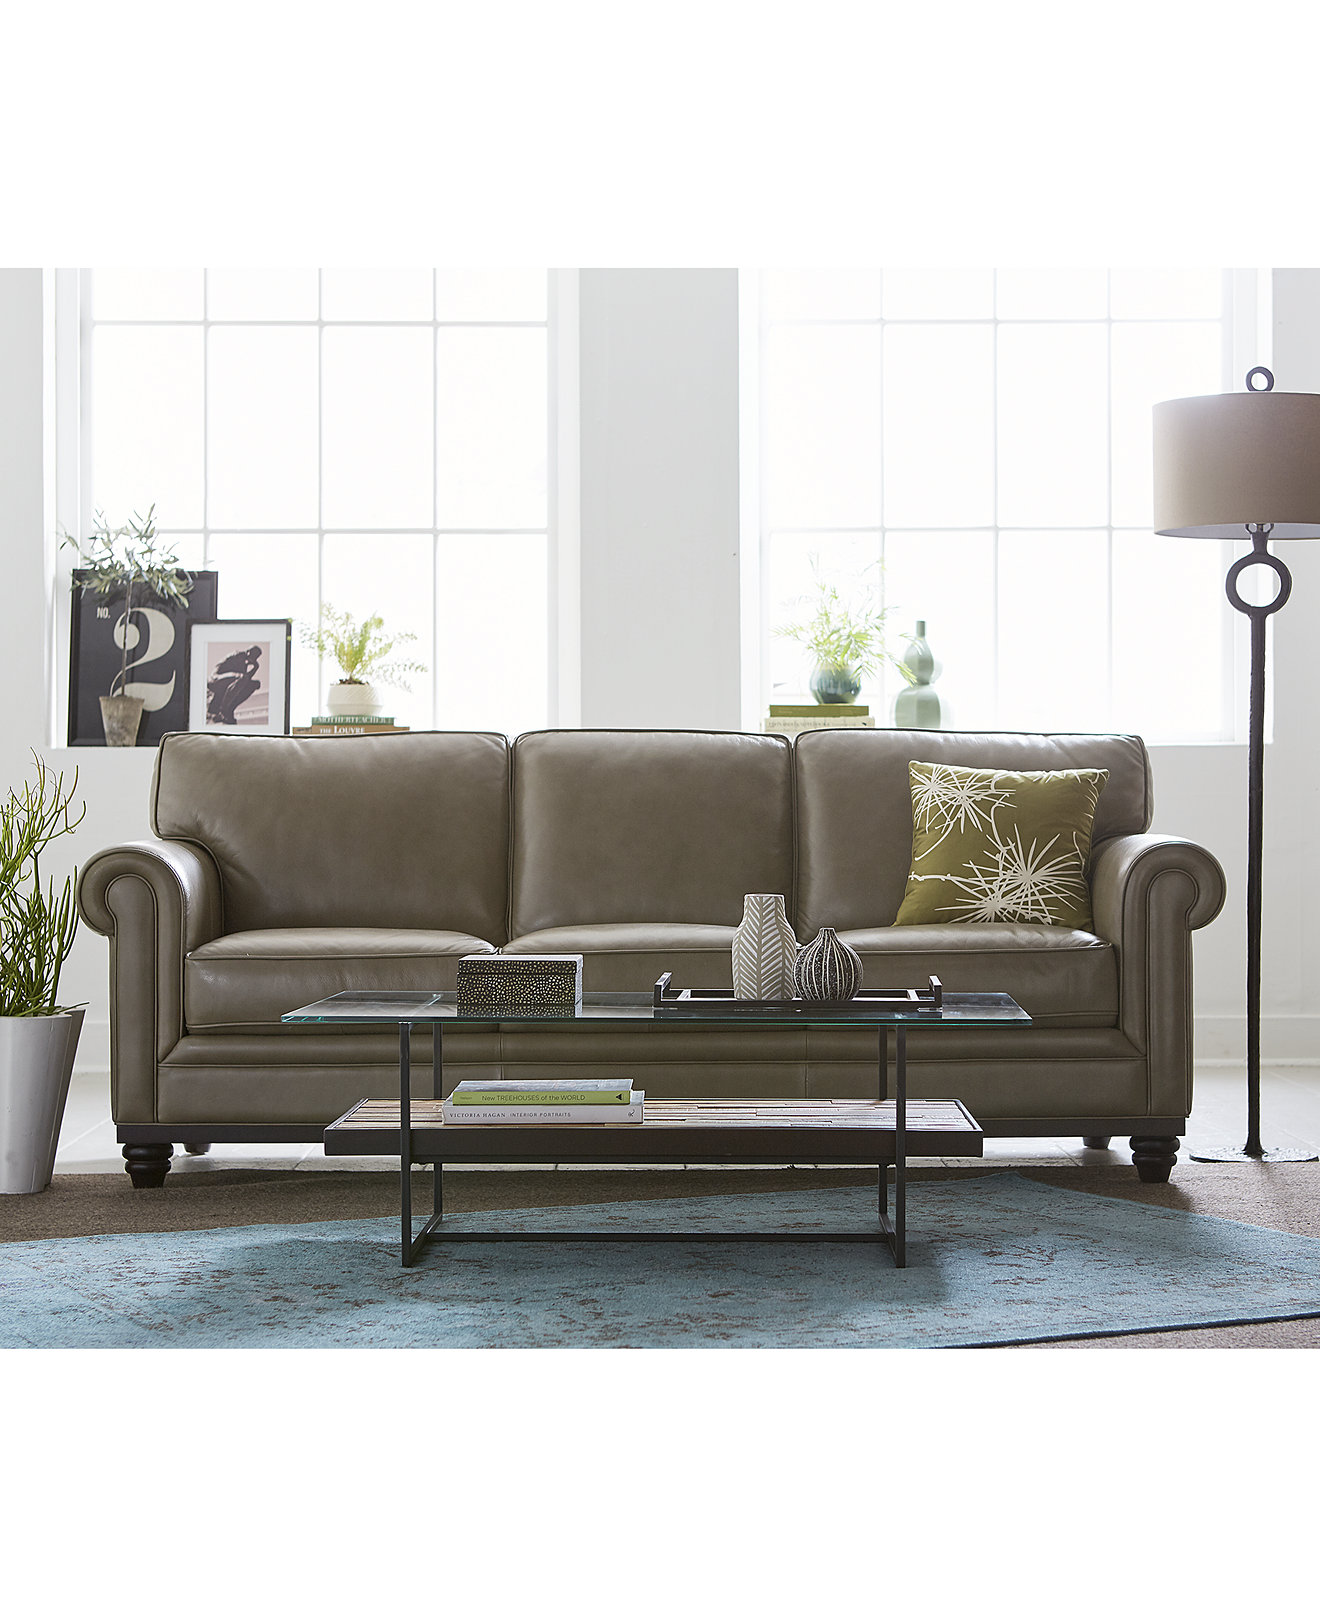 Leather Sofa Jacksonville Fl Thesofa